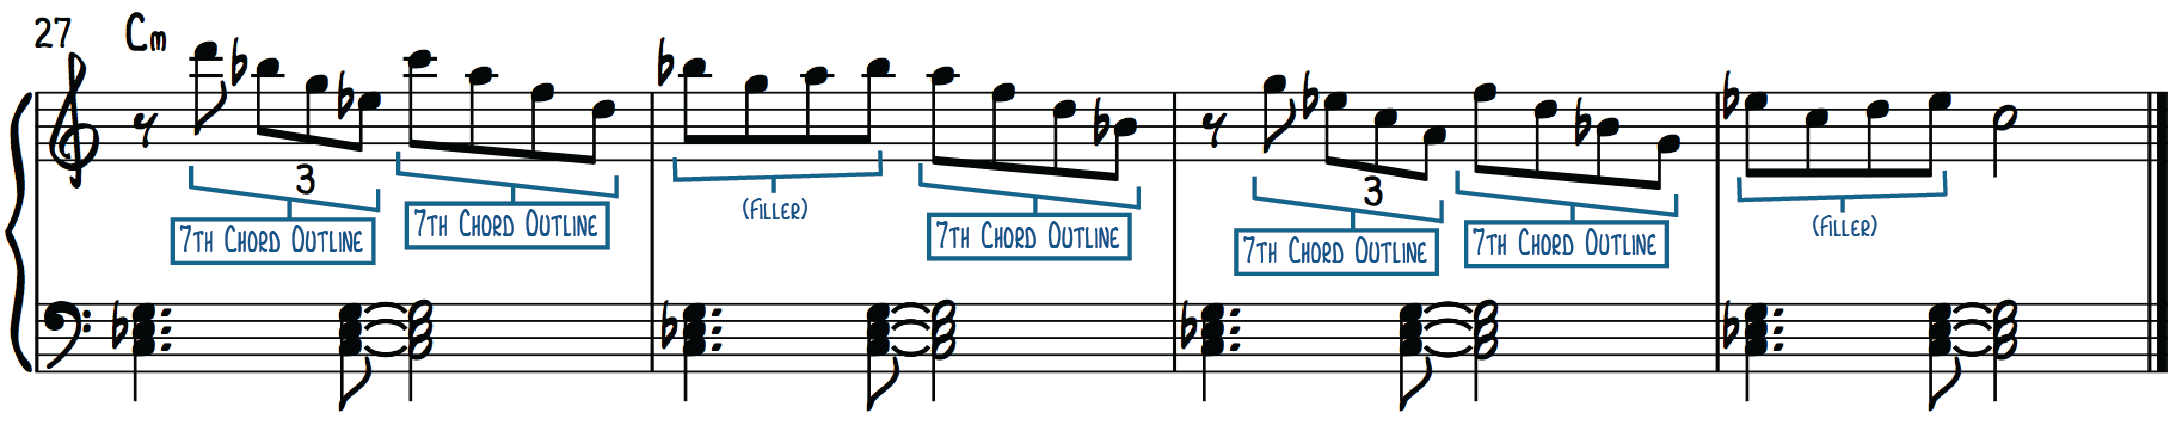 Jazz Improv Line using chord outlines